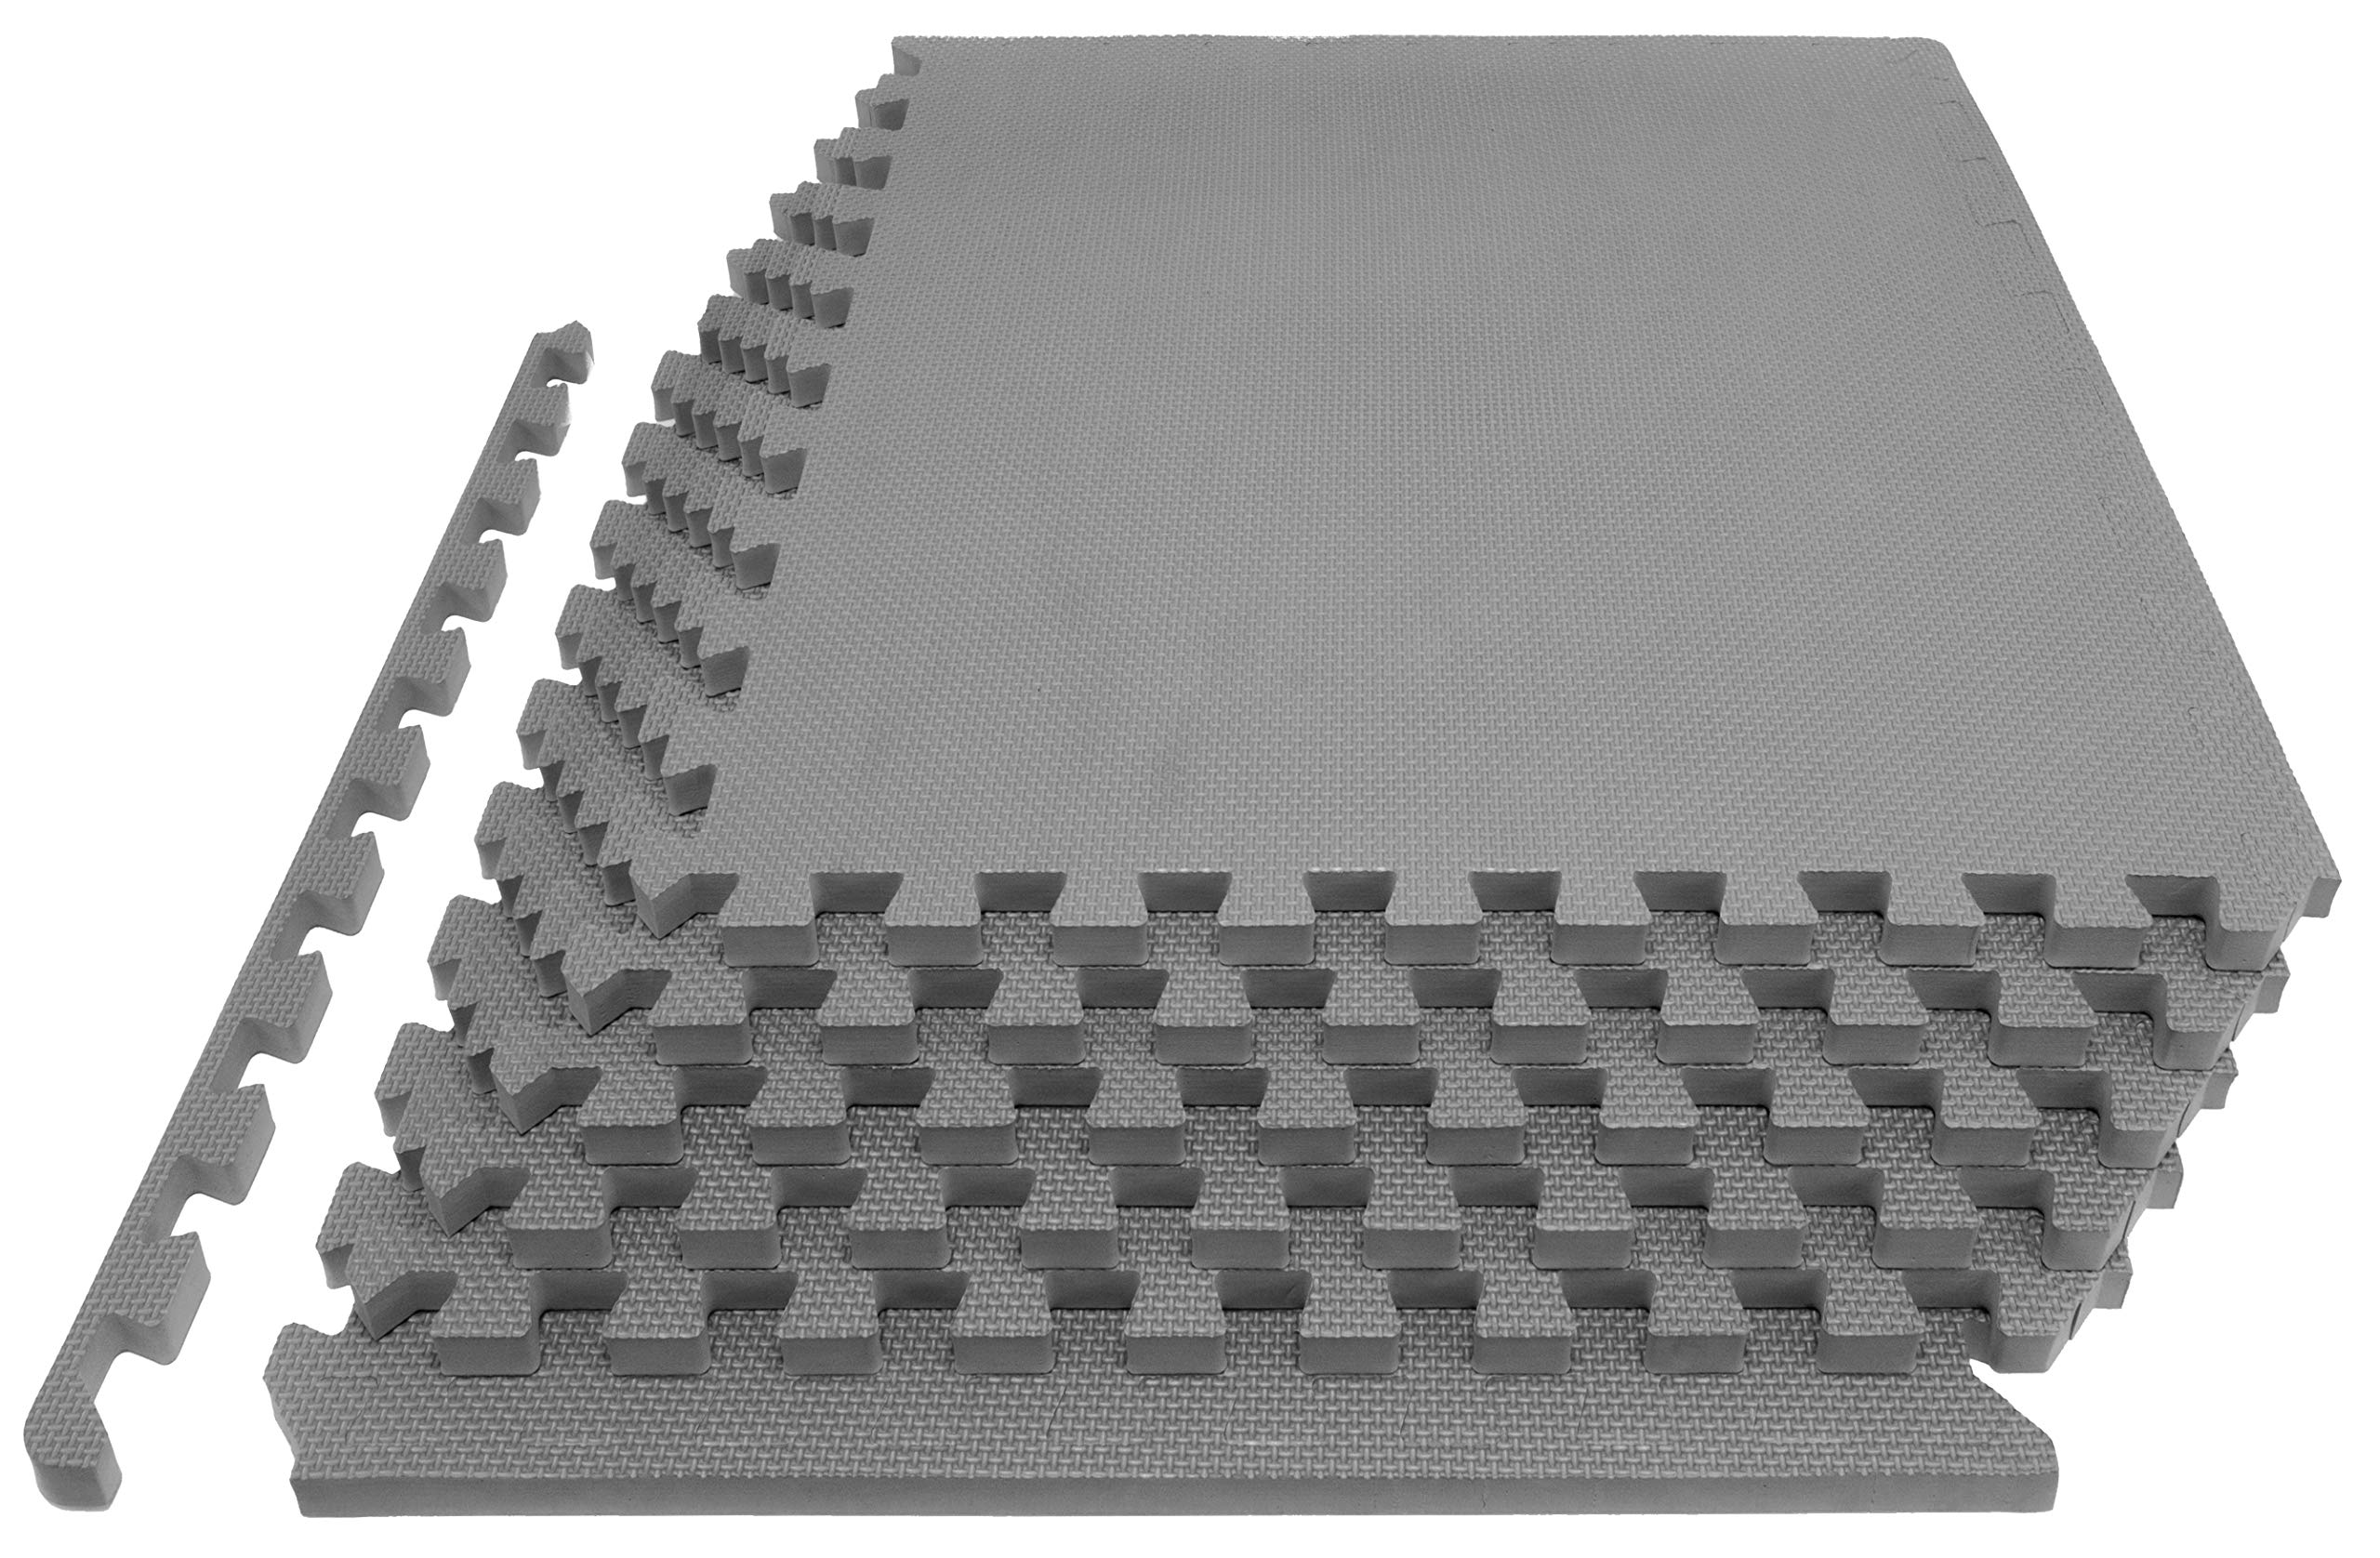 Prosource Fit Extra Thick Puzzle Exercise Mat 1'', EVA Foam Interlocking Tiles for Protective, Cushioned Workout Flooring for Home and Gym Equipment, Grey by ProsourceFit